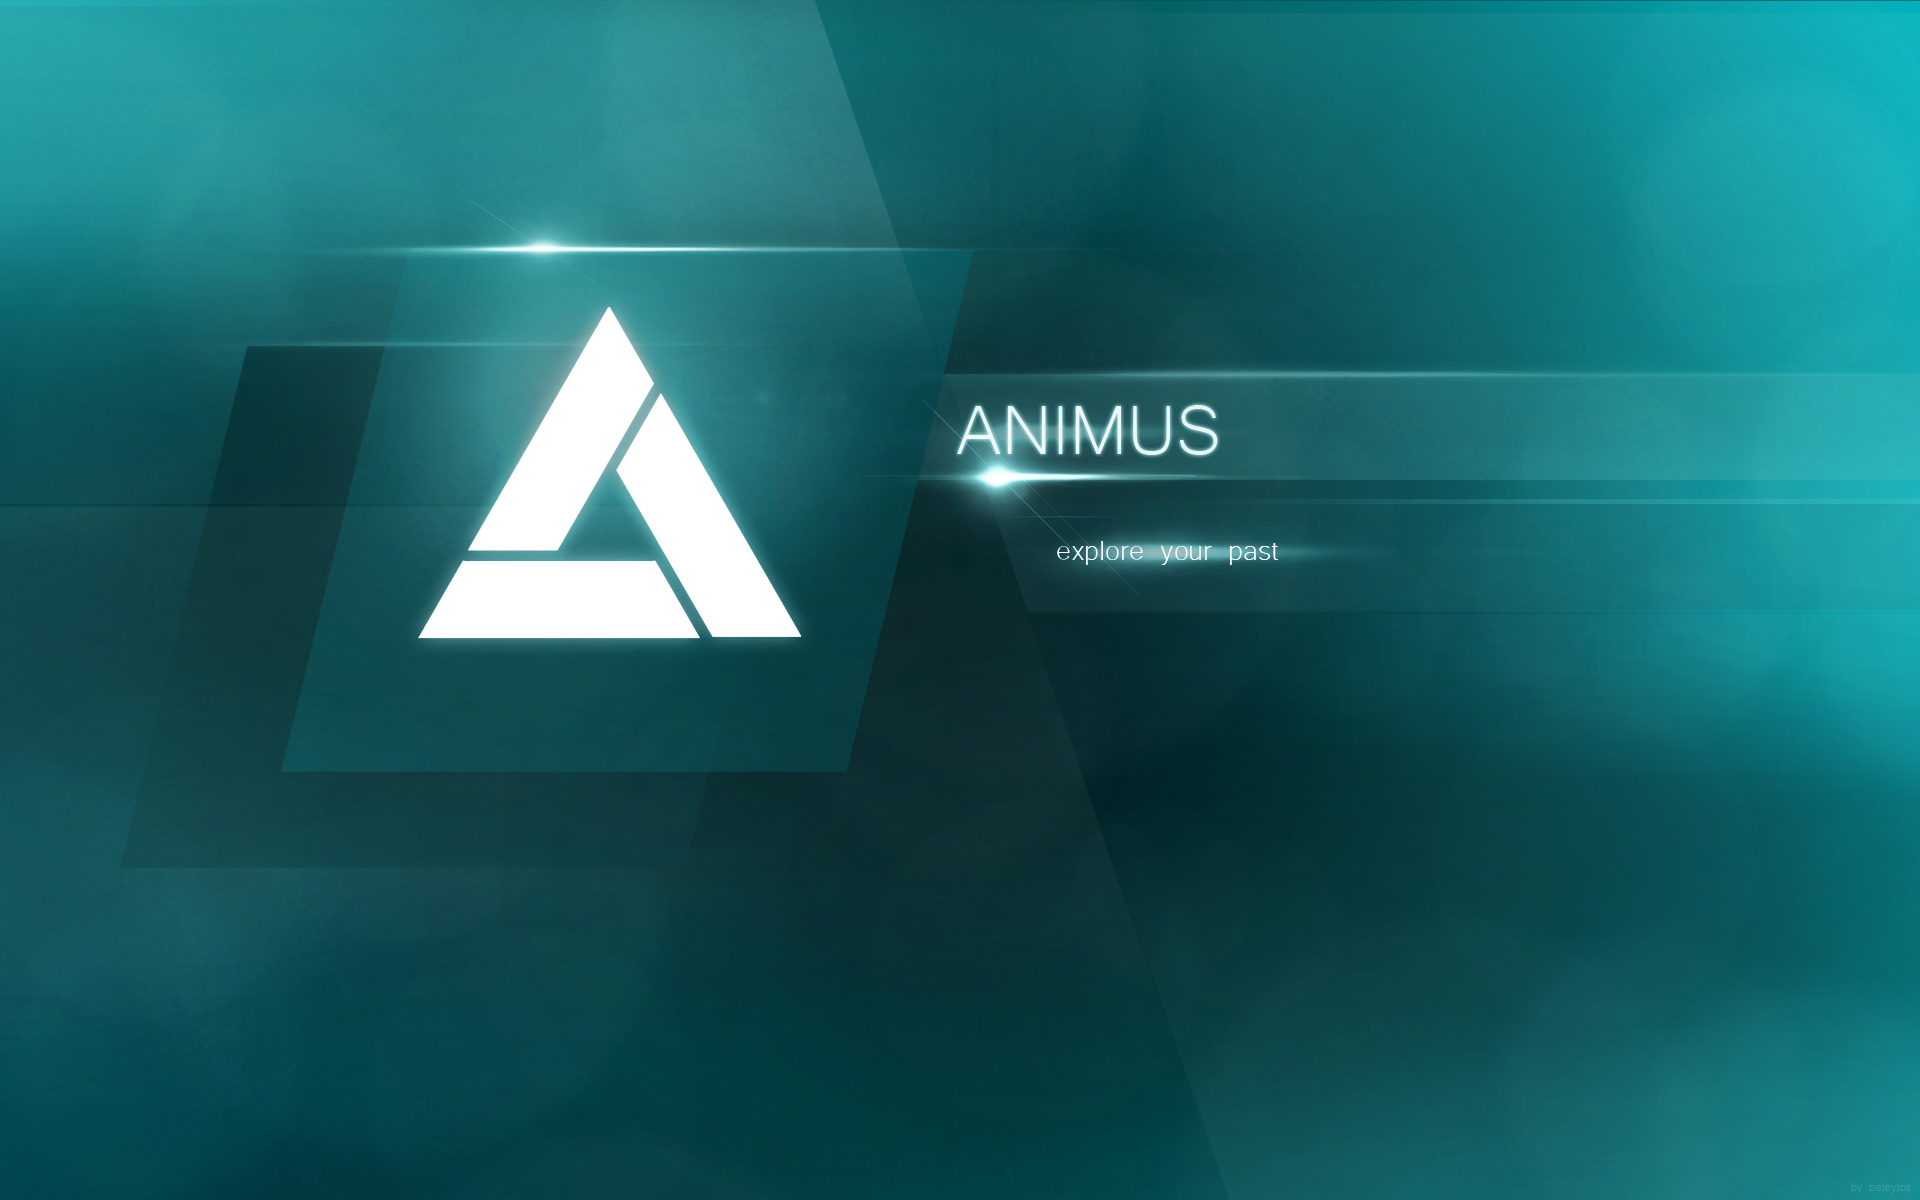 ac4_animus_by_pateytos-d6d14yt.png